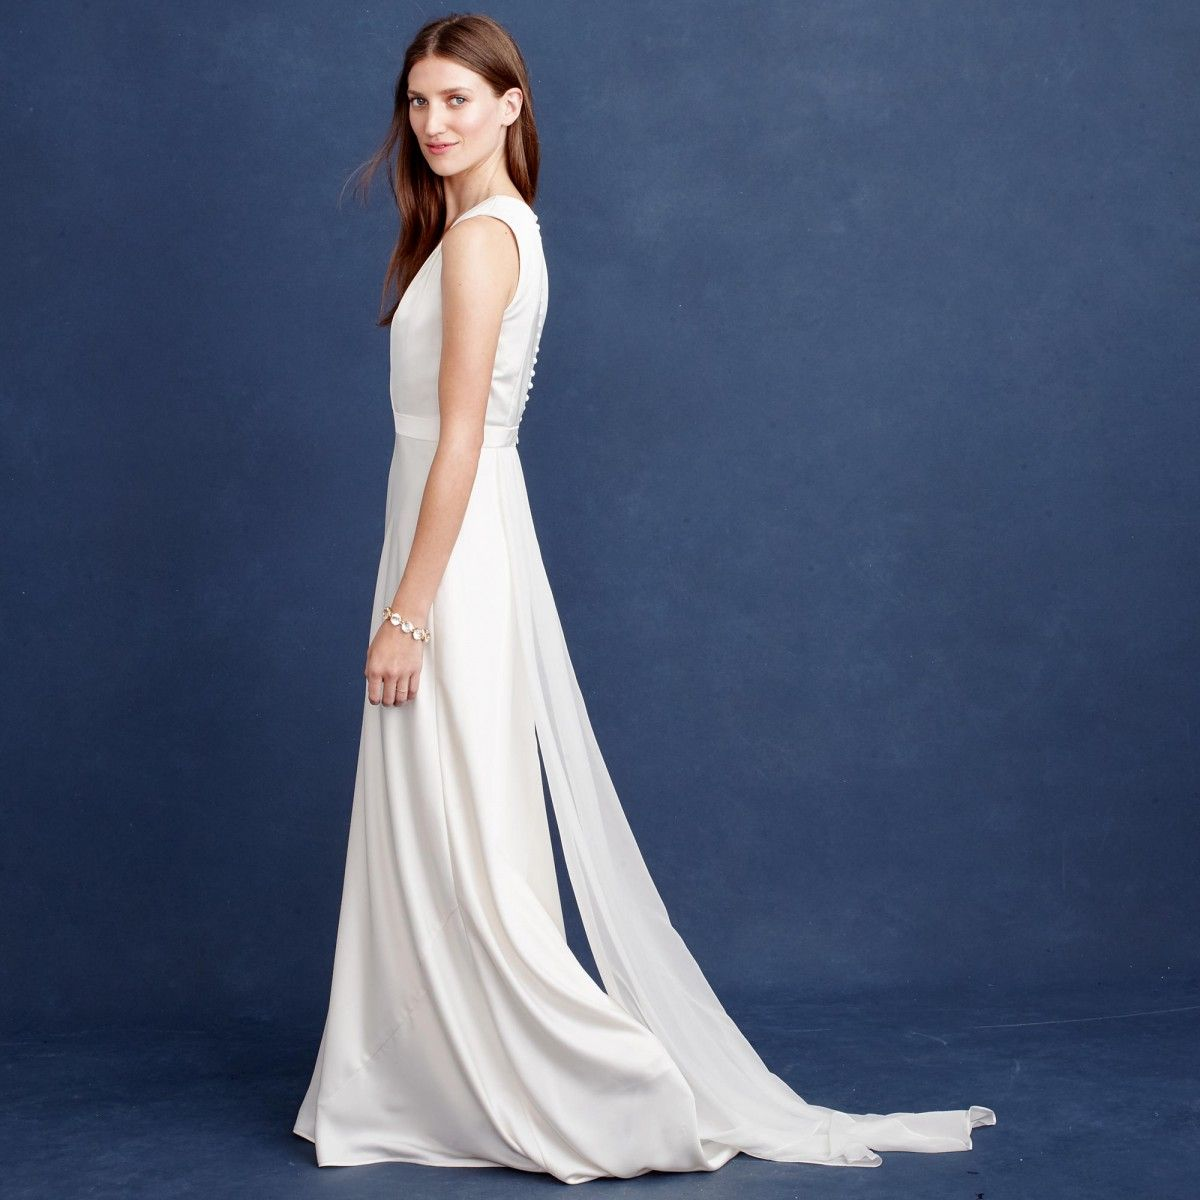 J.Crew\'s New Wedding Dress Collection Is Simply Stunning | Boda y ...